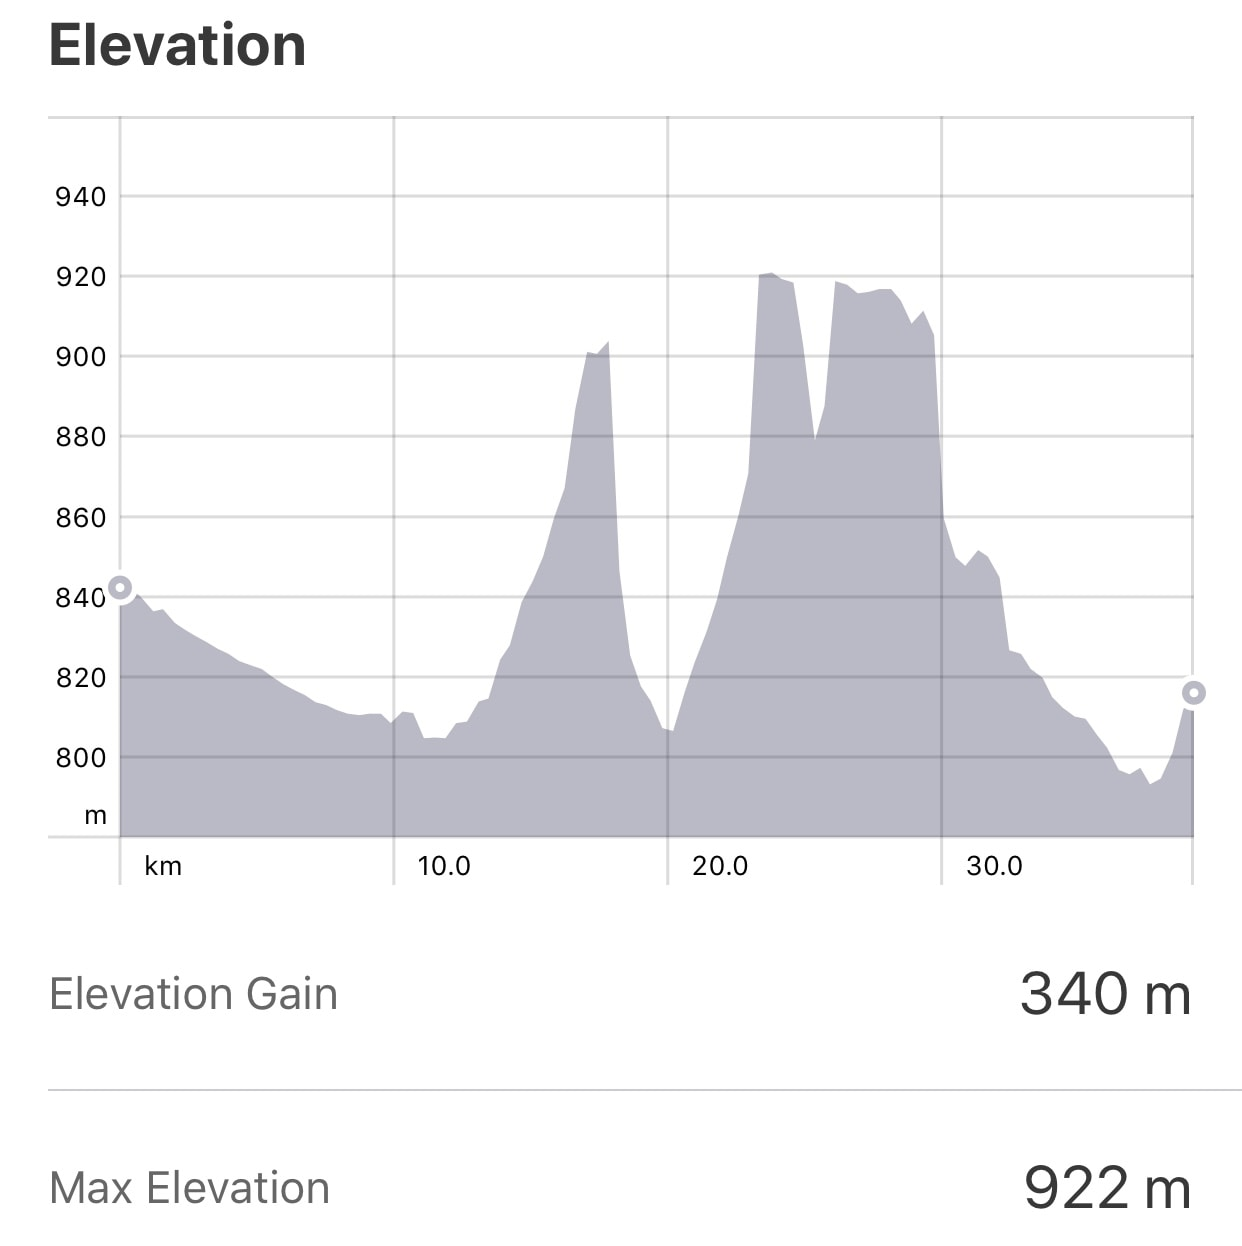 Strava: Burgos to Castrojeriz Elevation